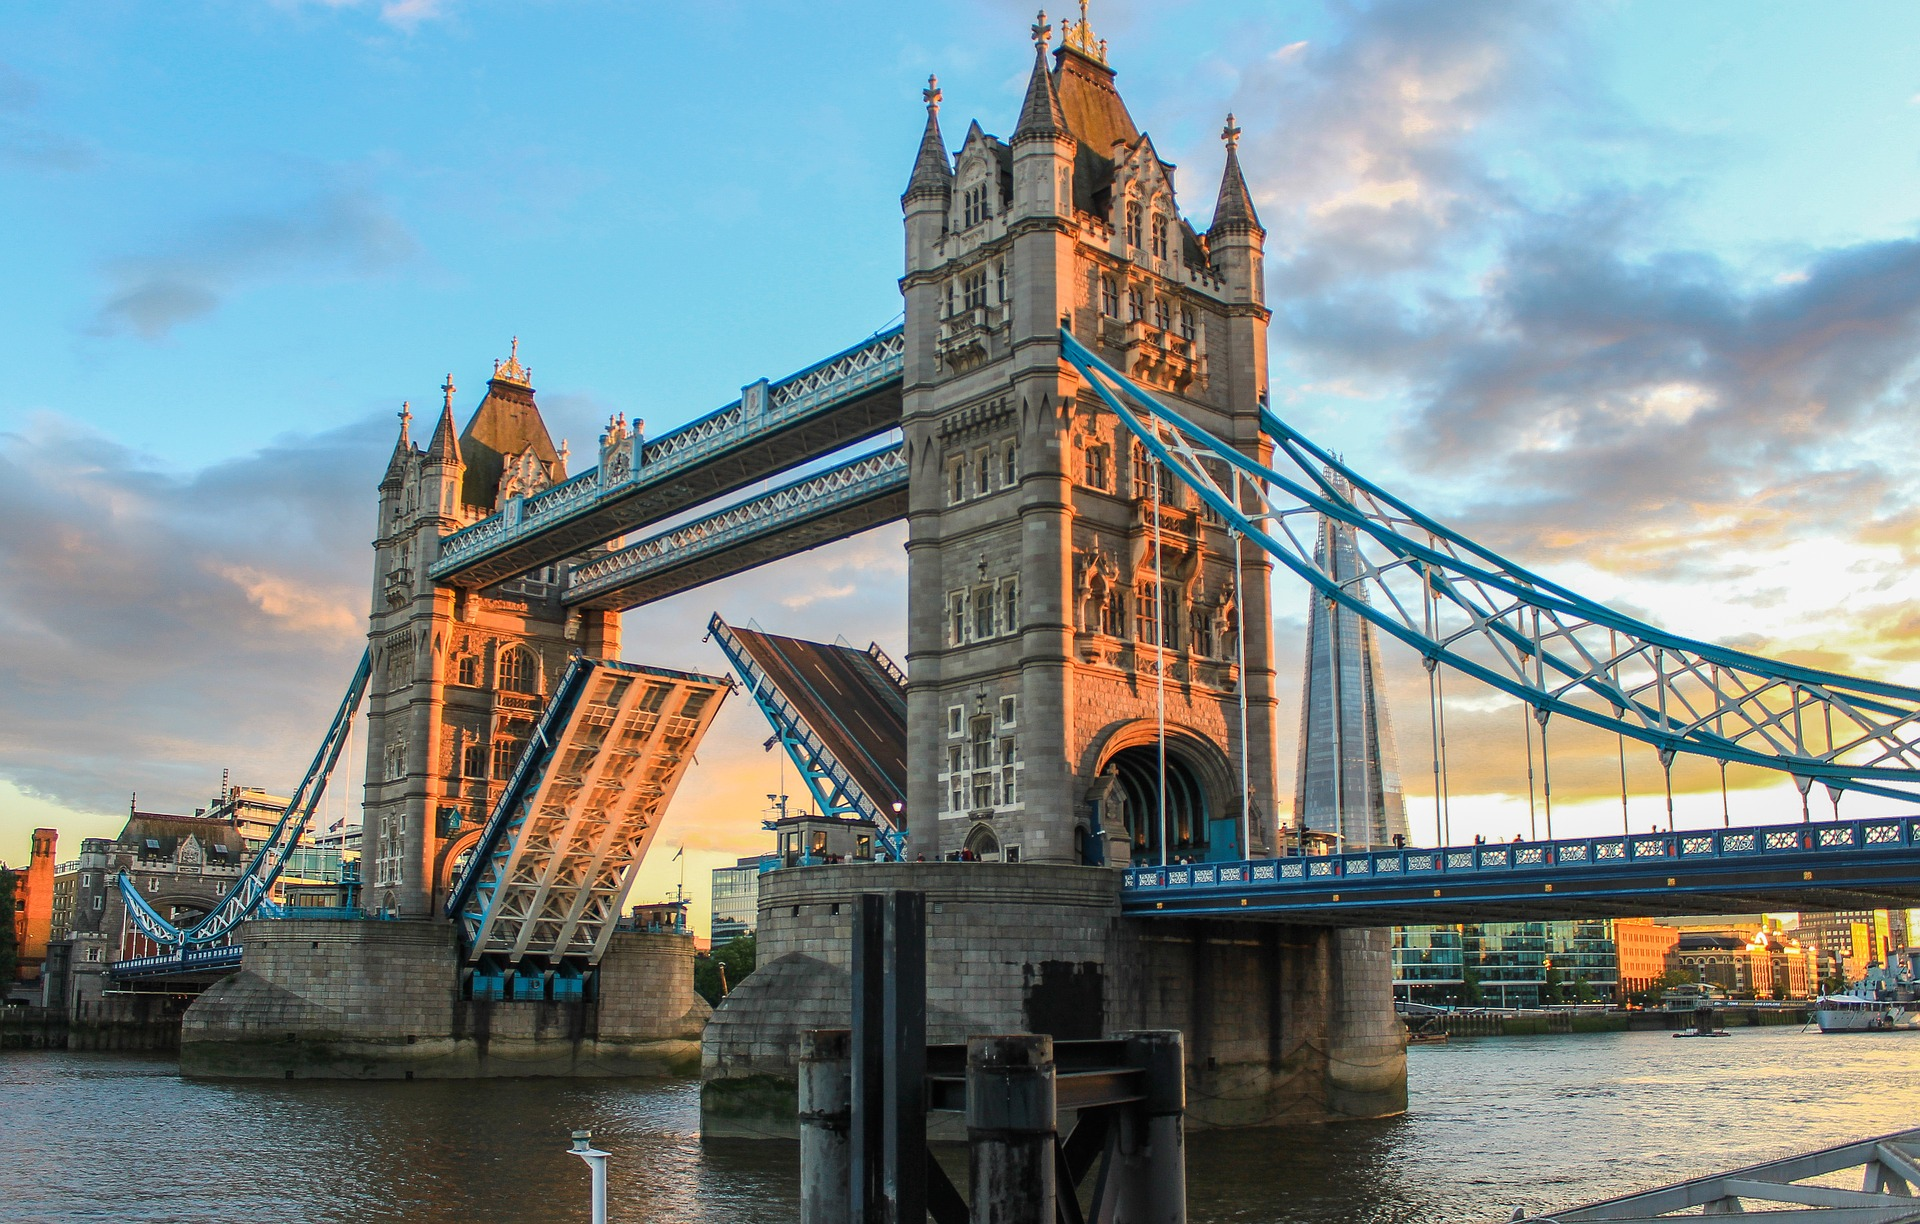 tower-bridge-980961_1920